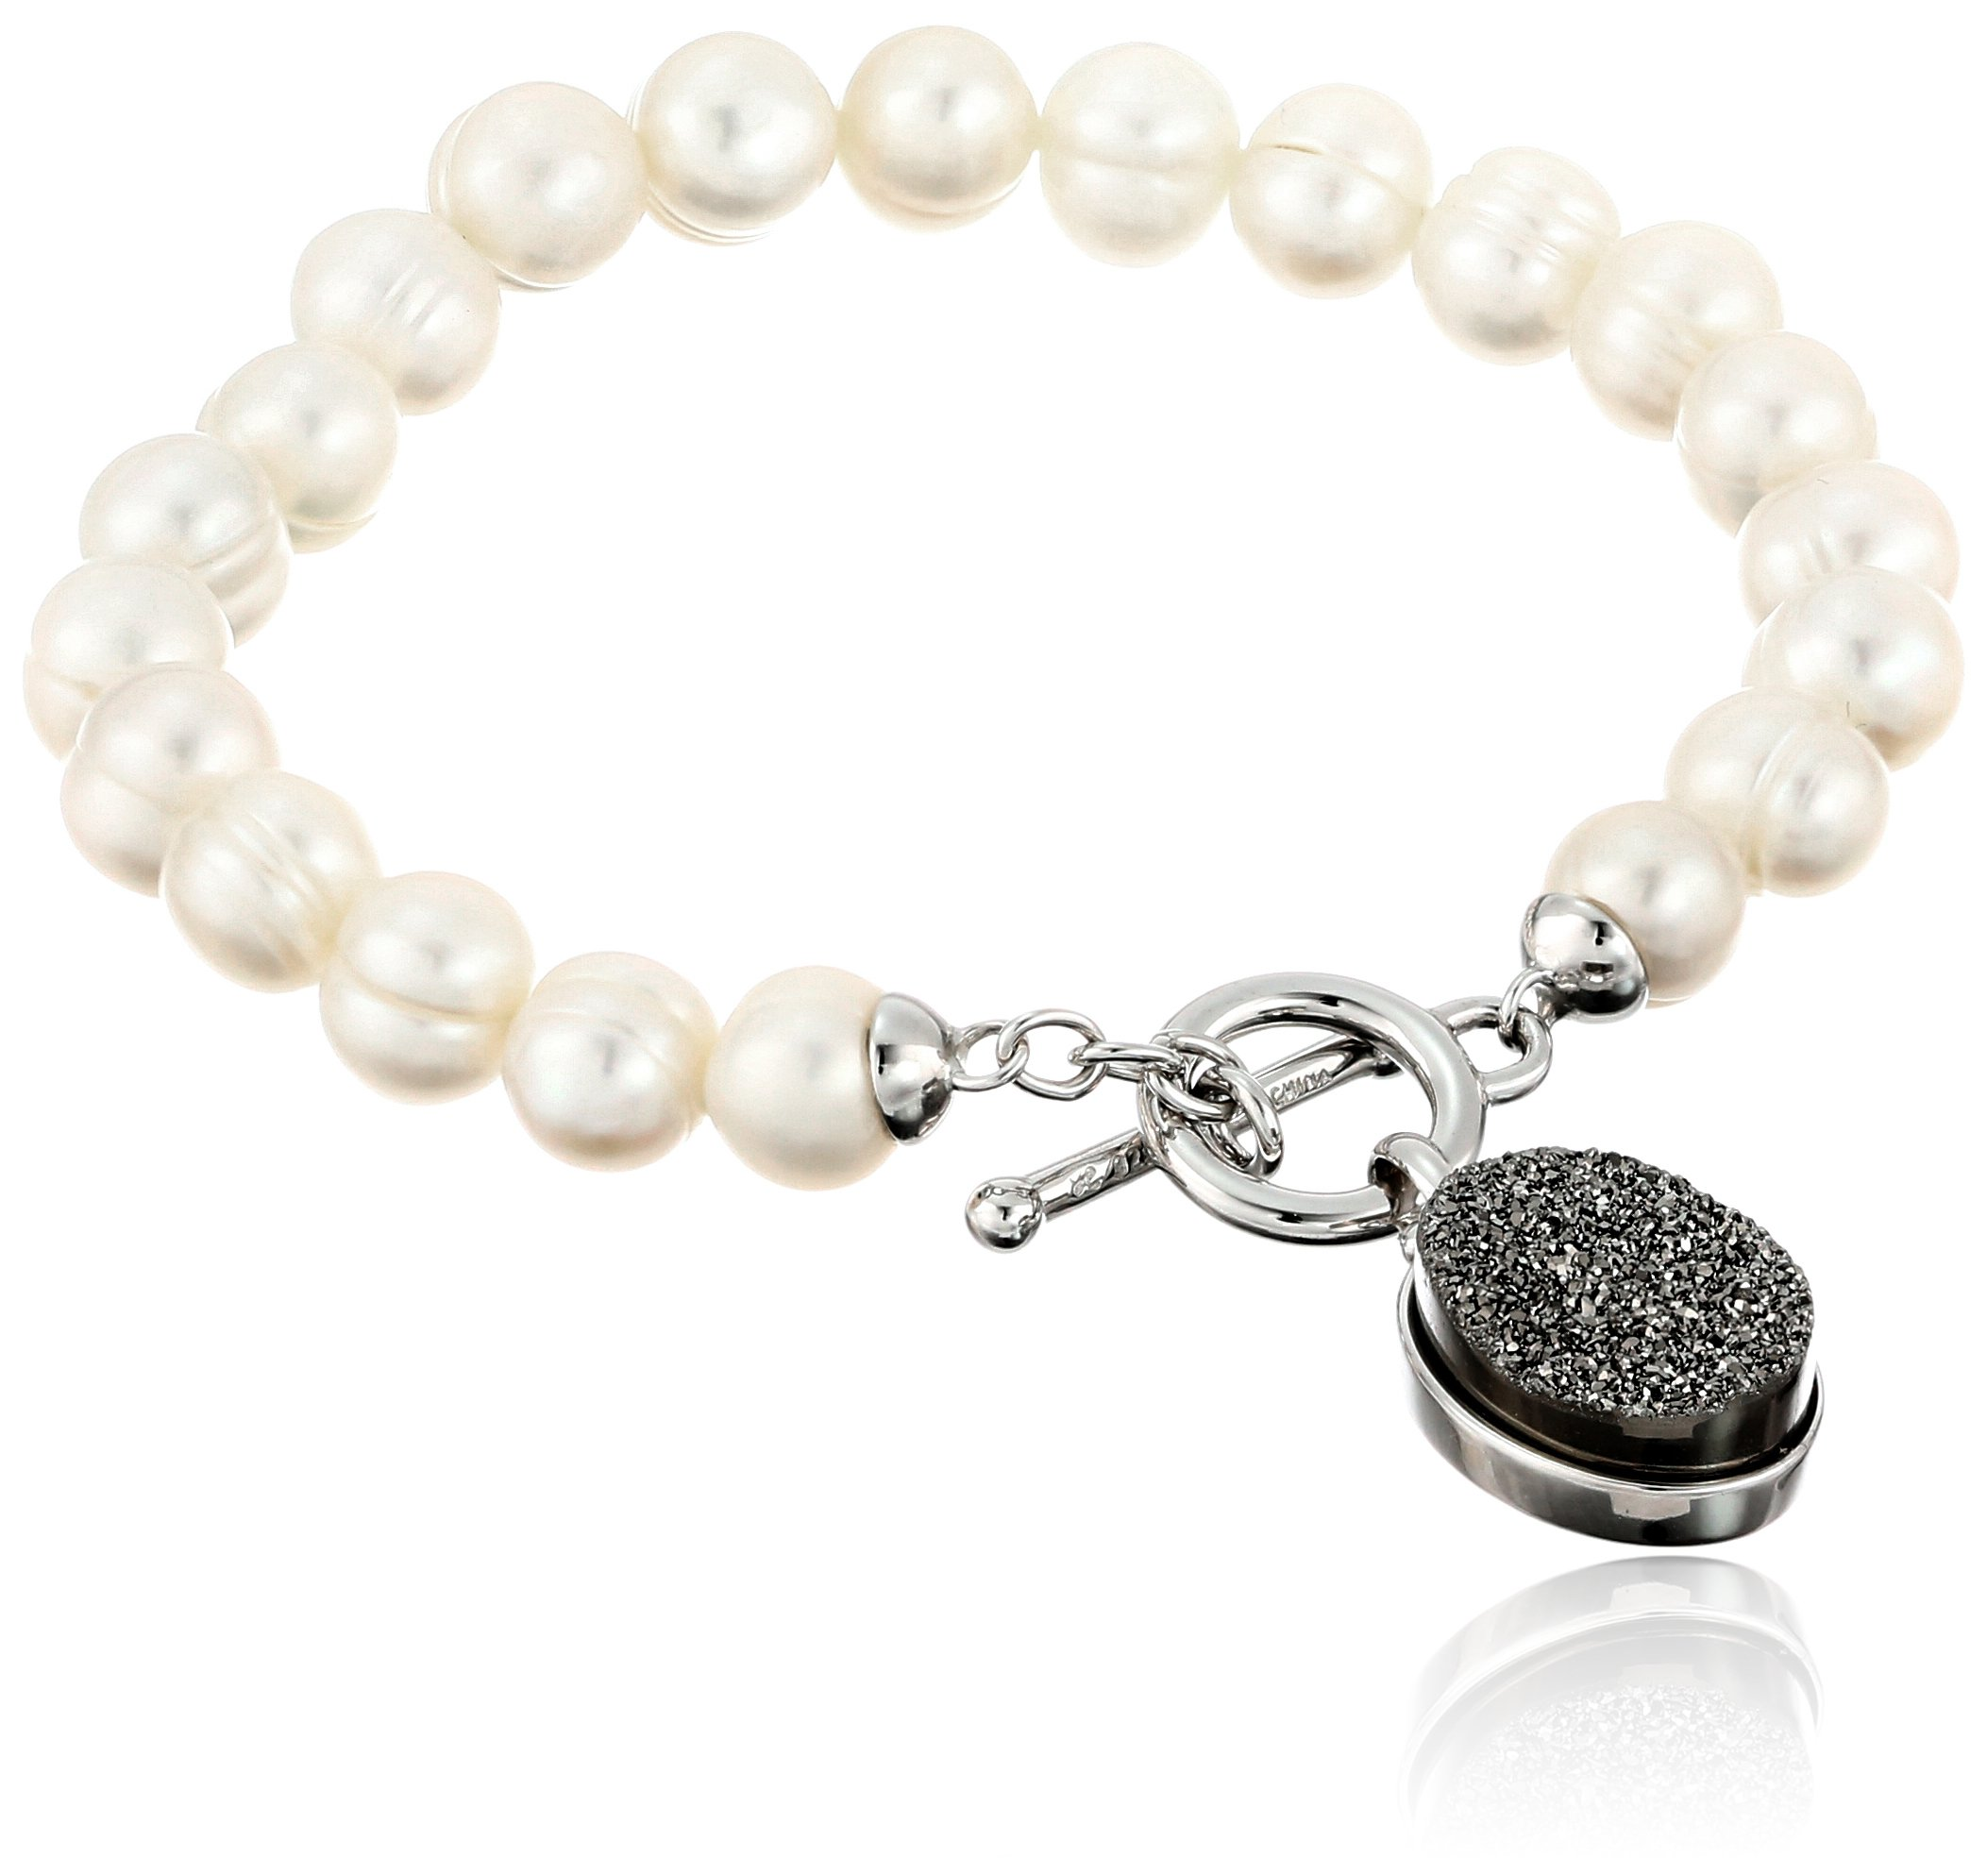 Honora ''Rock Star'' White Freshwater Cultured Pearl and Silver Agate Drusy 7.5'' Toggle Strand Bracelet